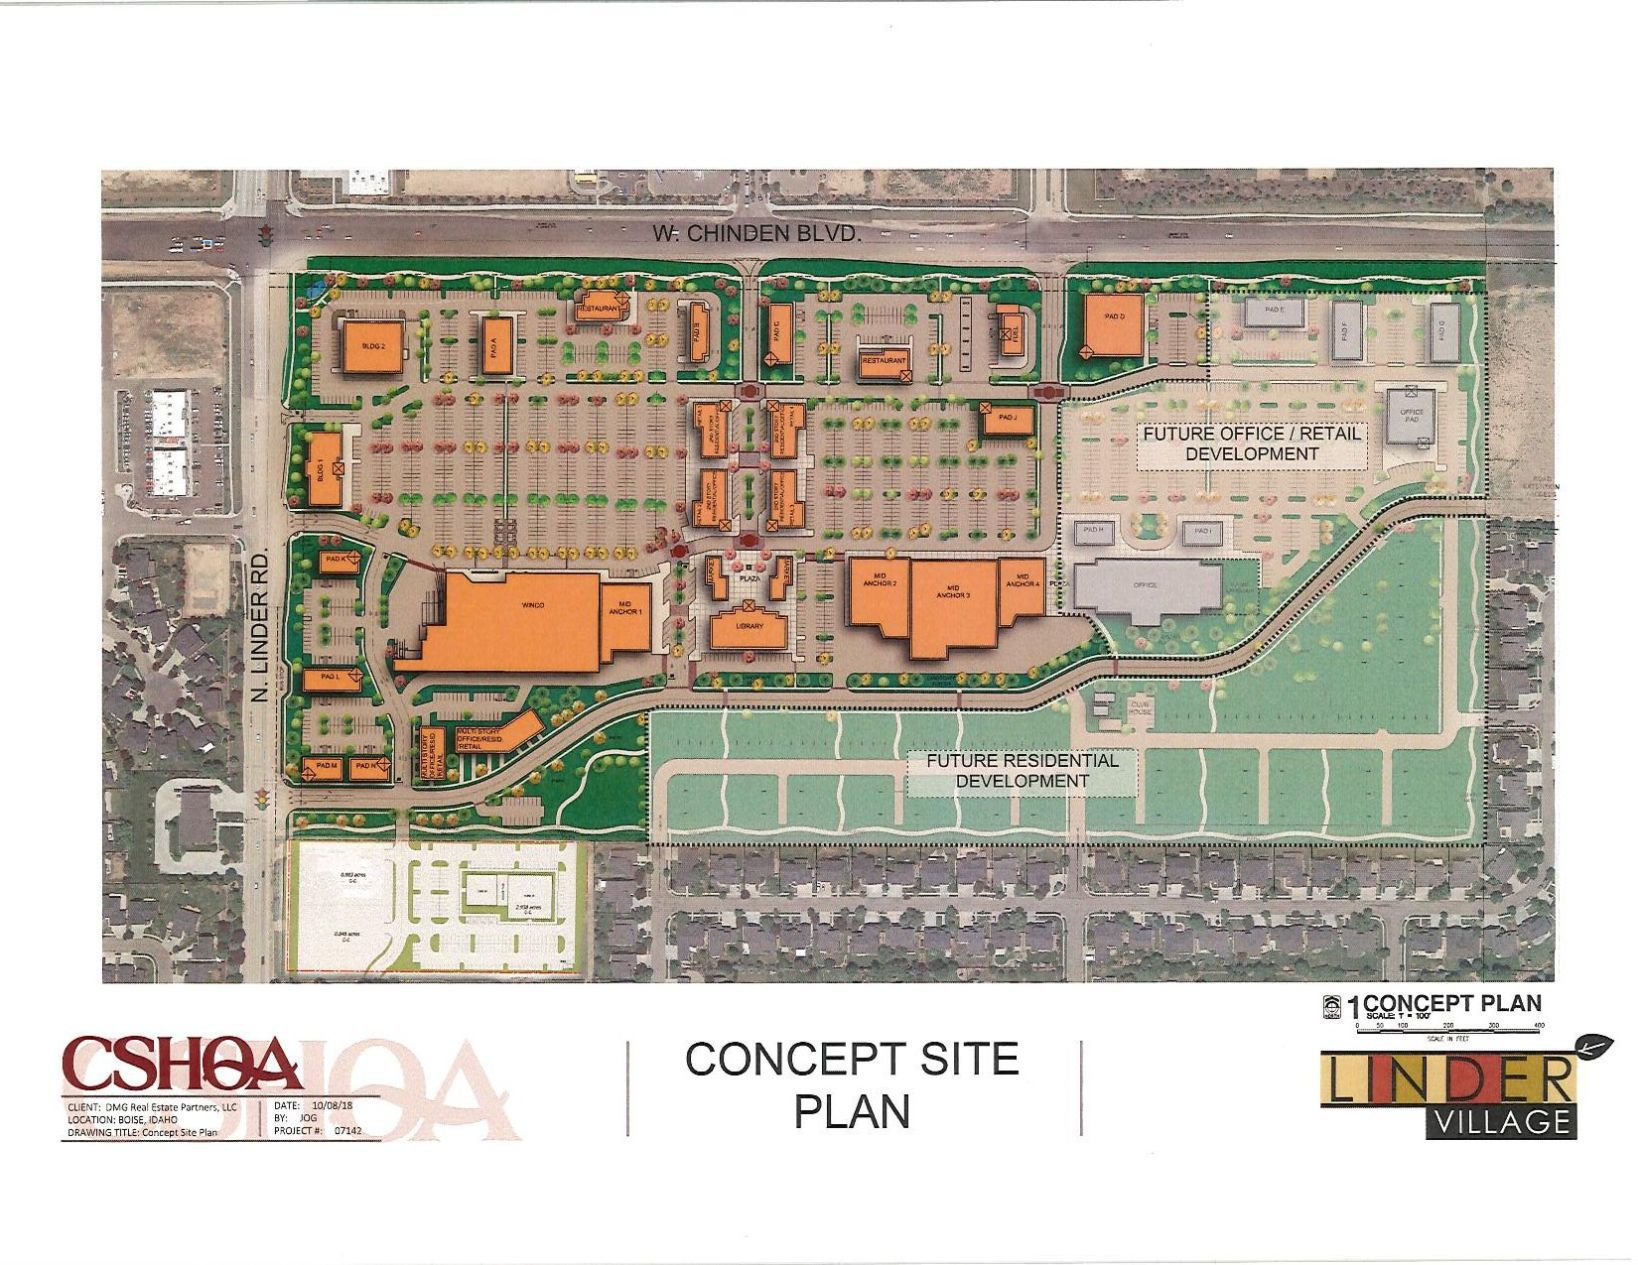 Linder Village submits revised plans, WinCo Foods is on board | Idaho Press